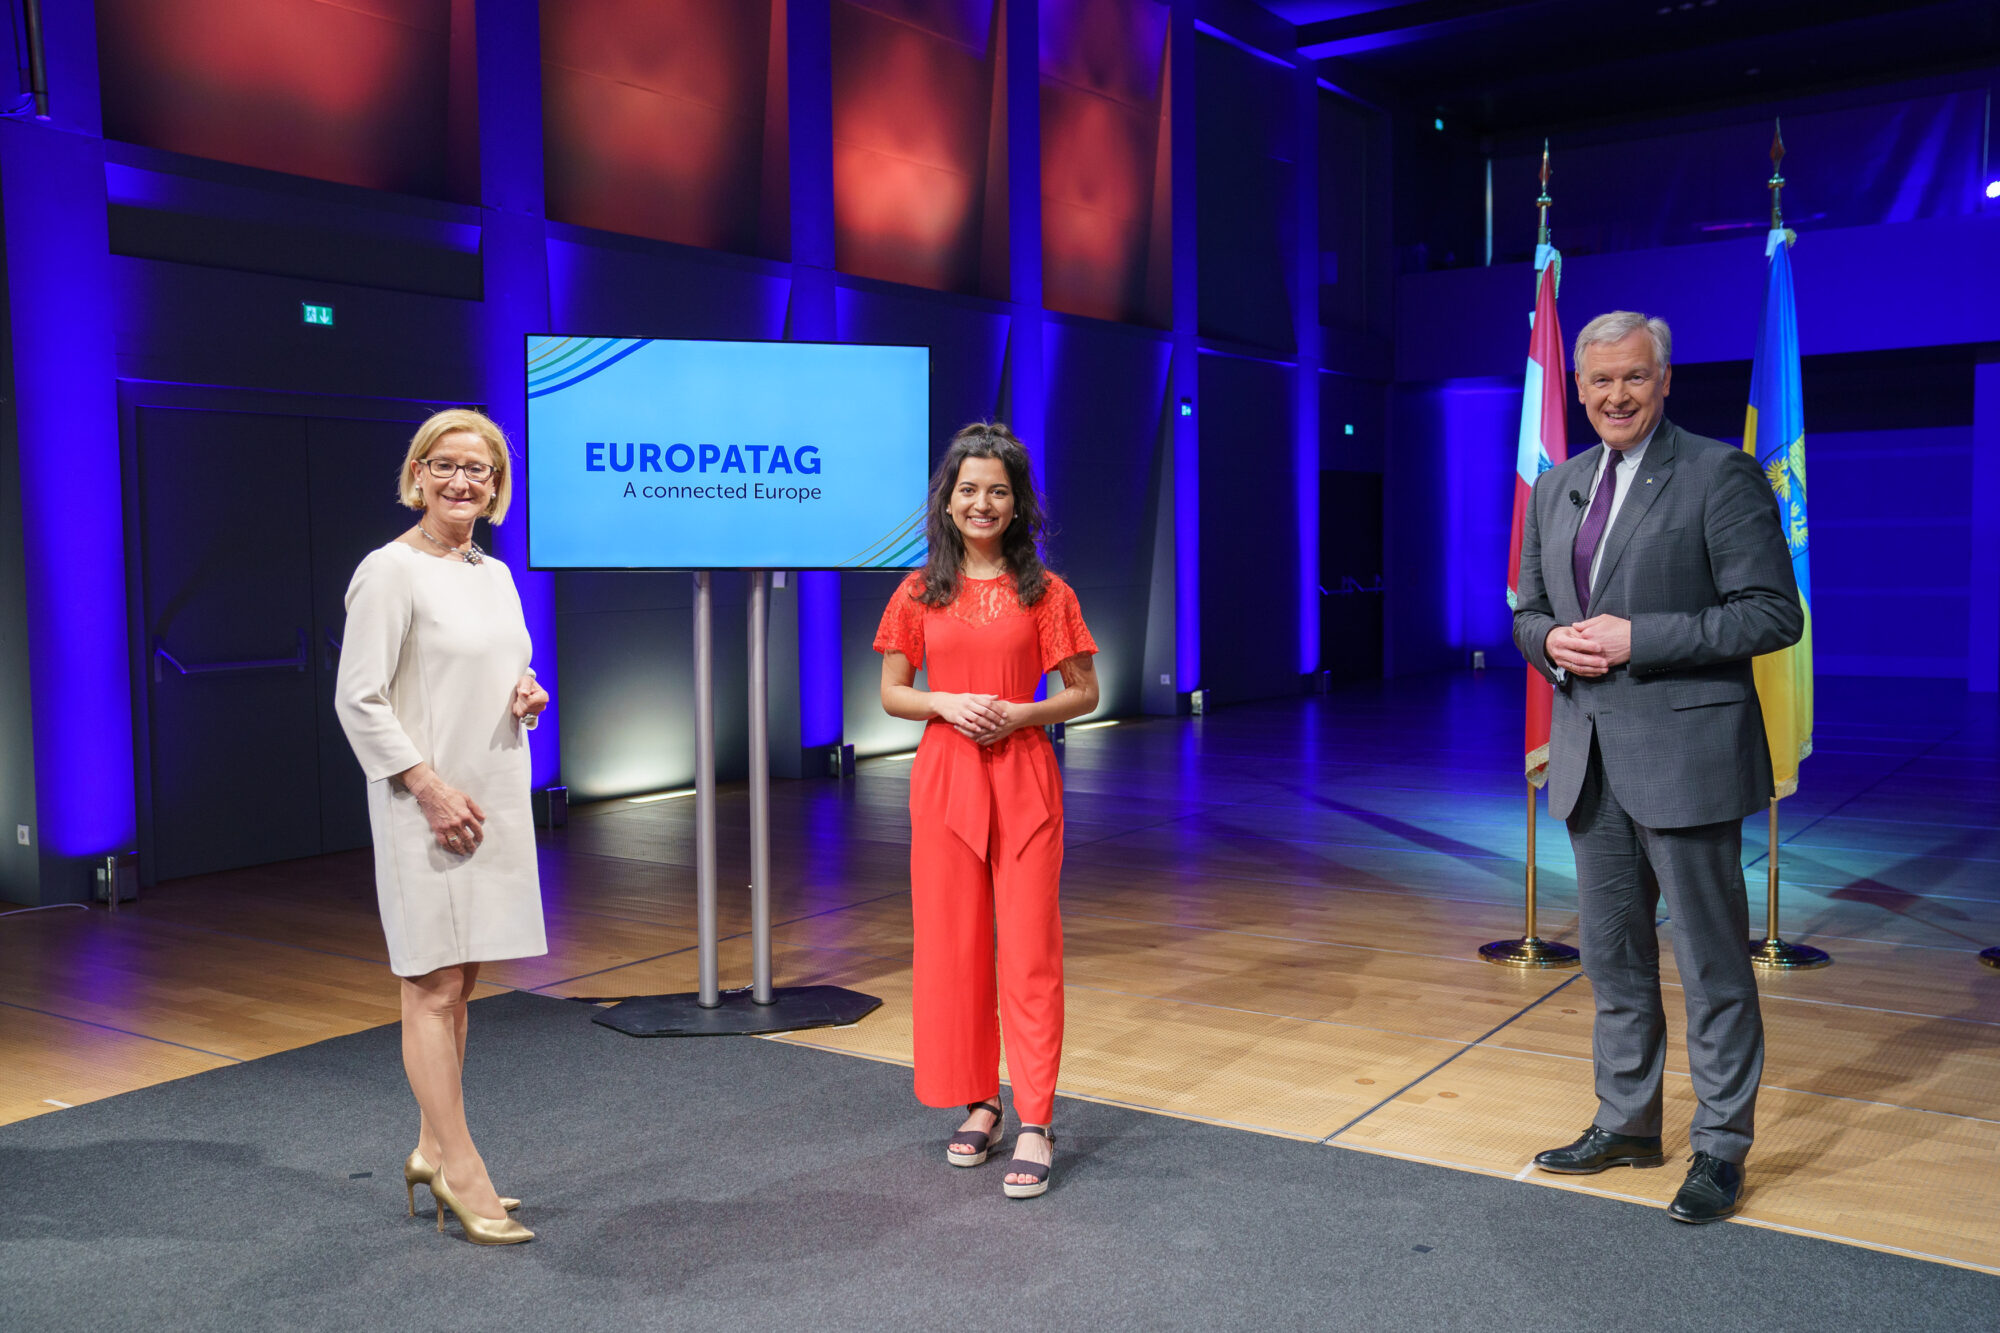 Europatag 2021 – A connected Europe